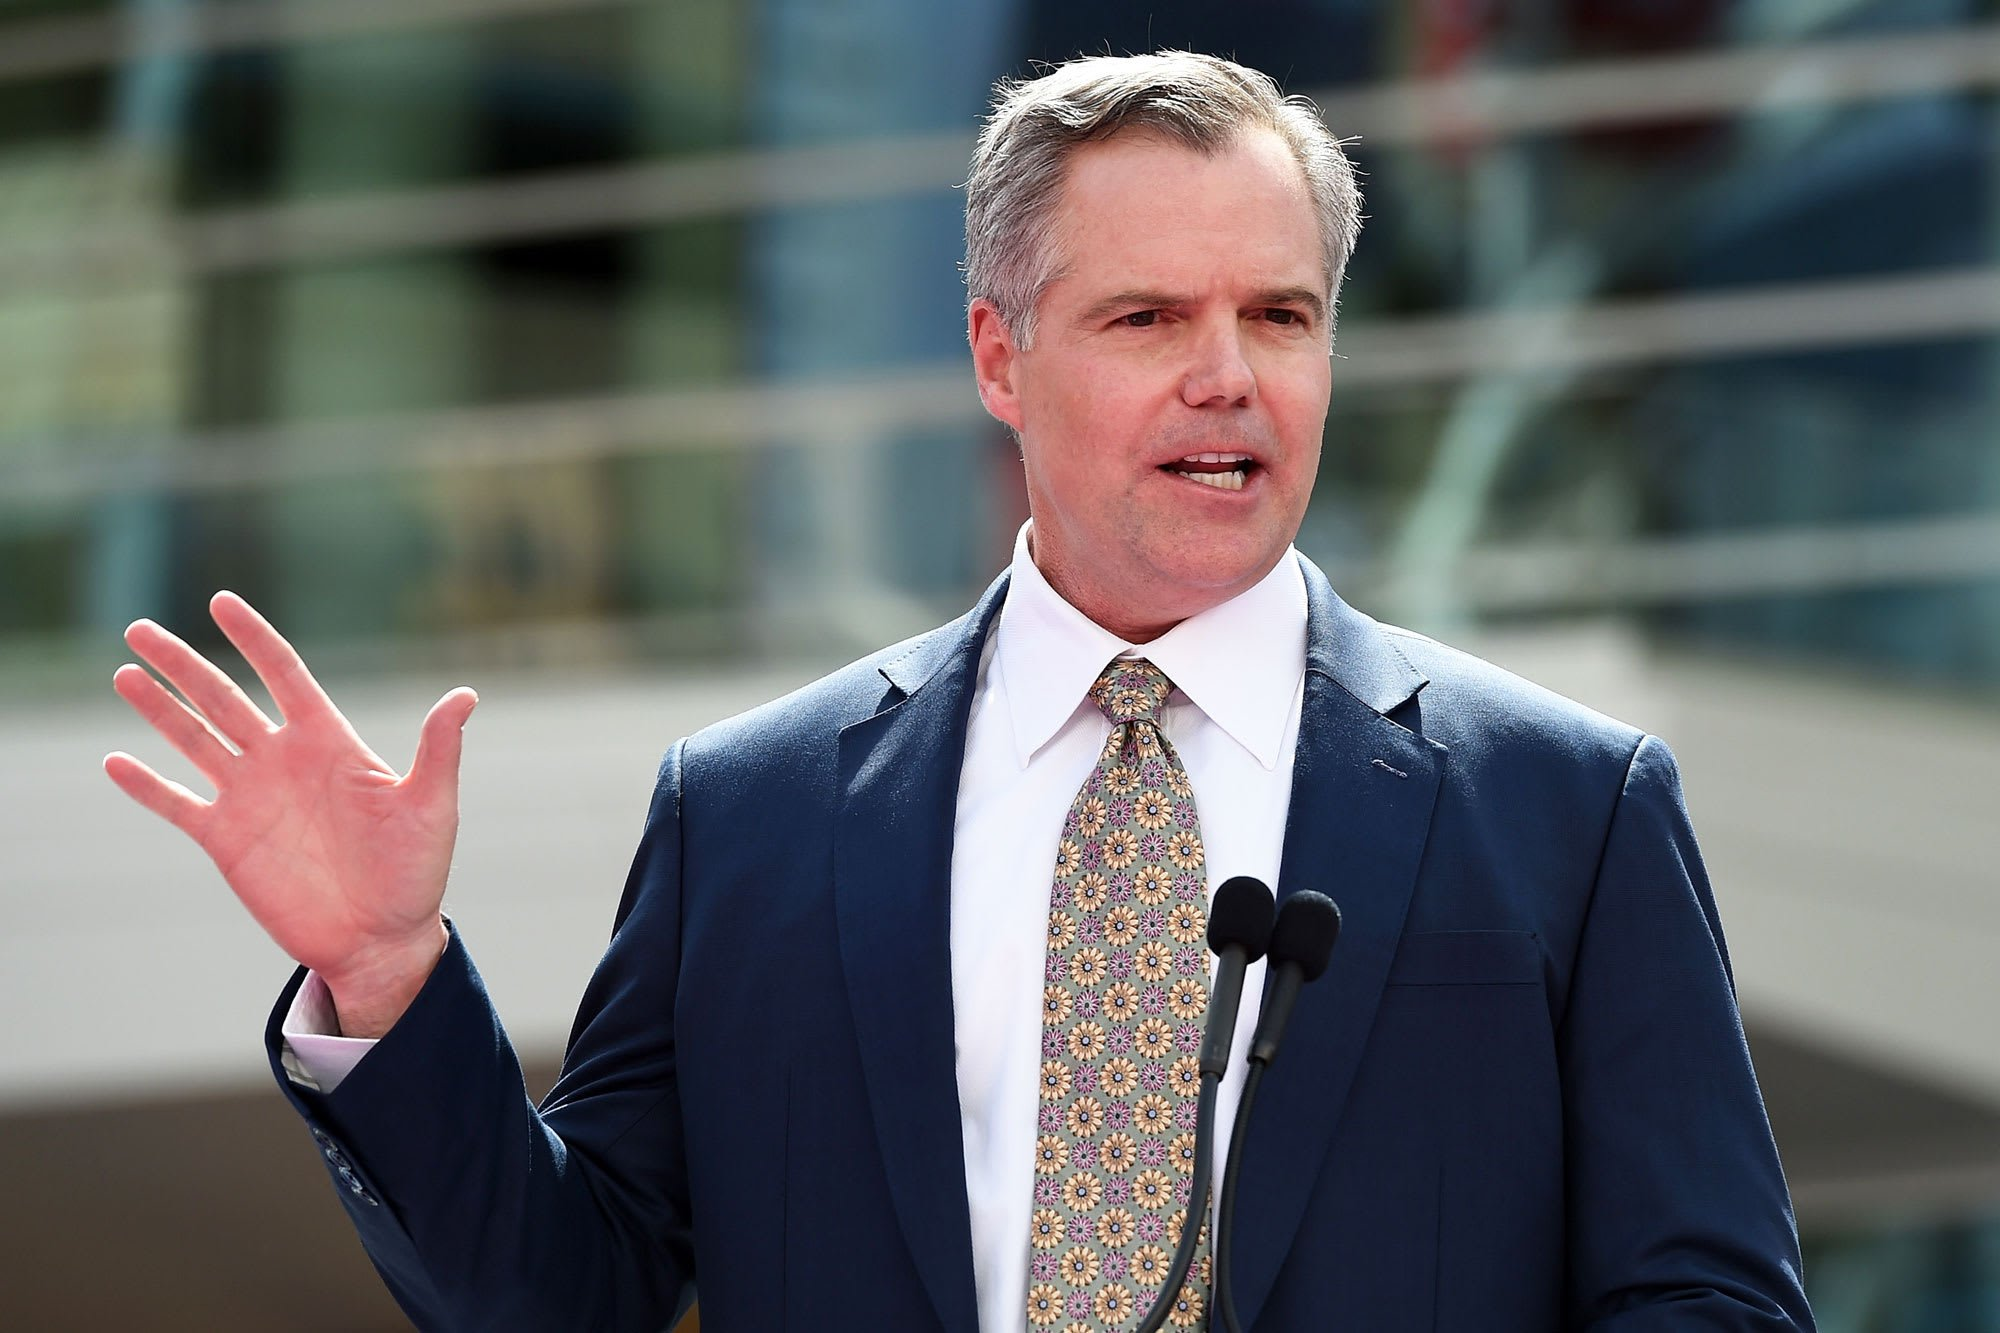 MGM Gives Former CEO Jim Murren $32m Handshake